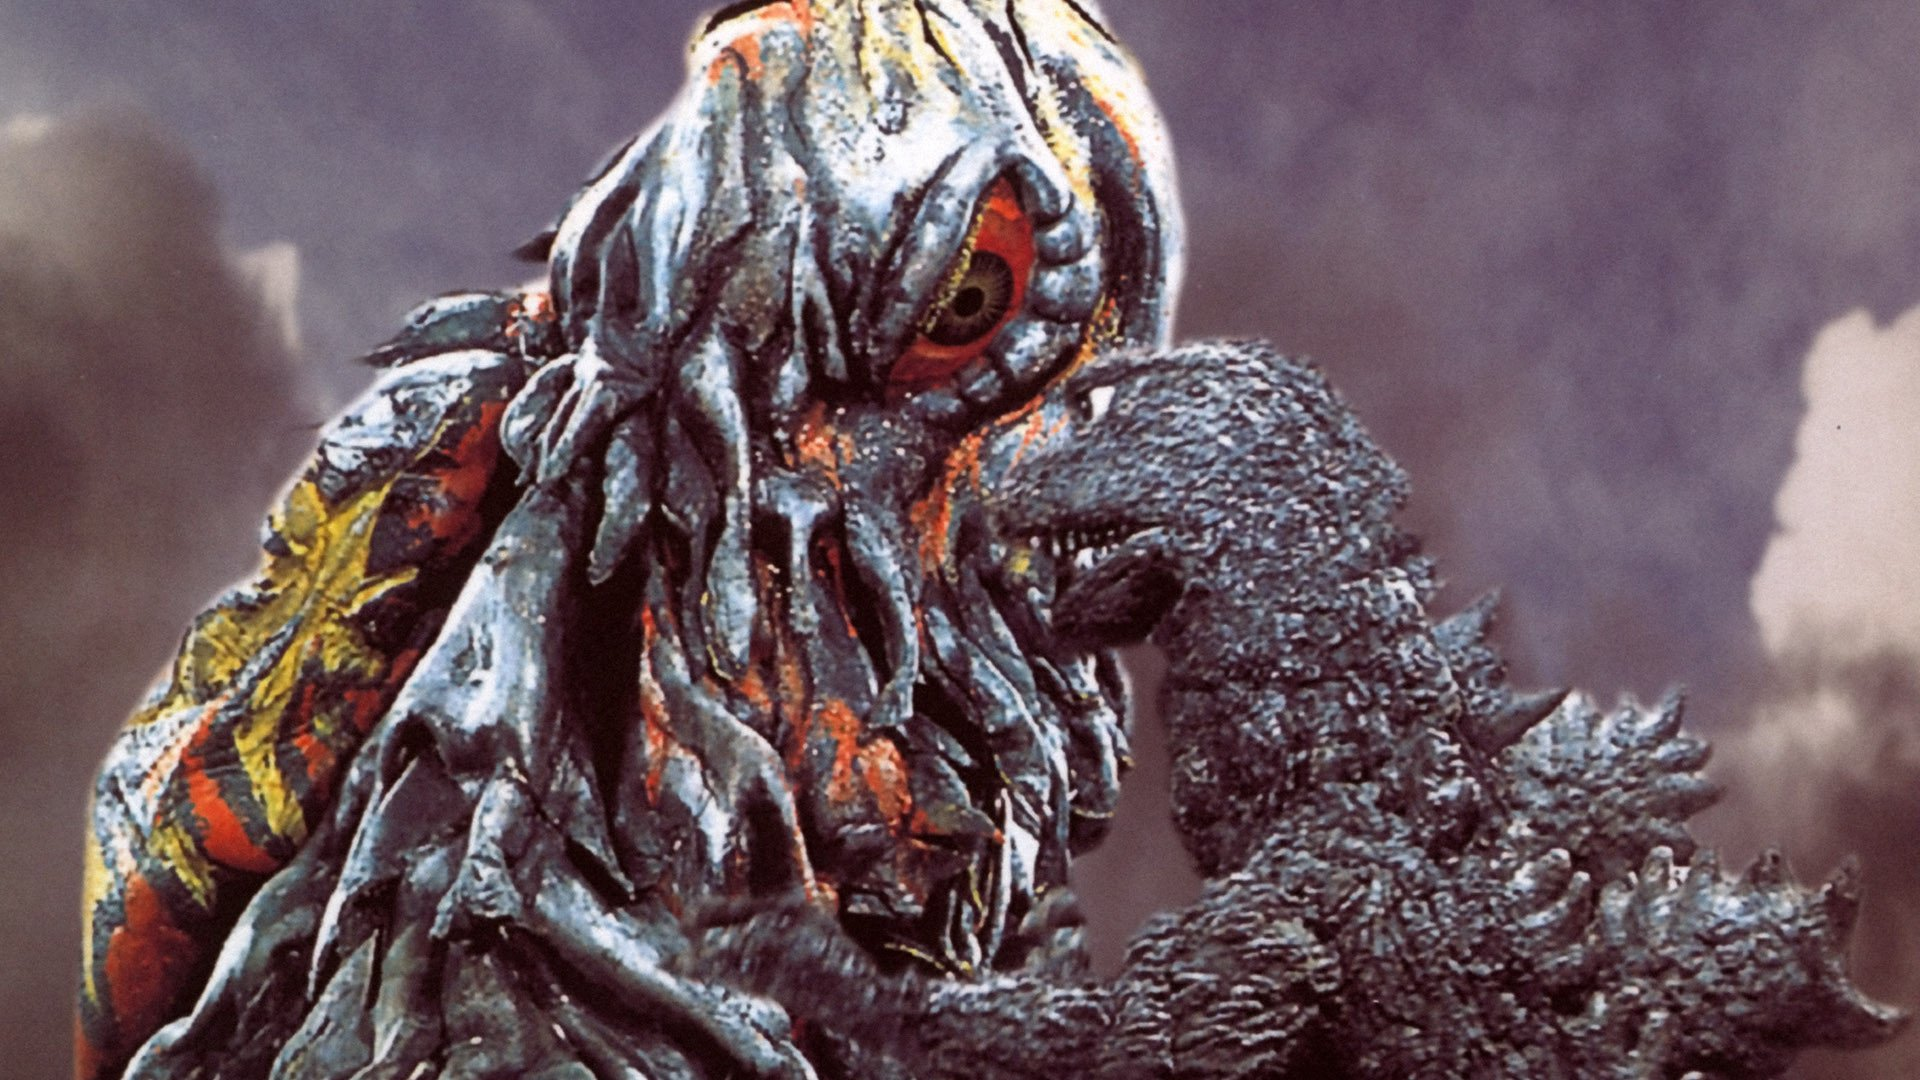 Daily Grindhouse | THE MONSTER FILES - GODZILLA VS. THE SMOG ...